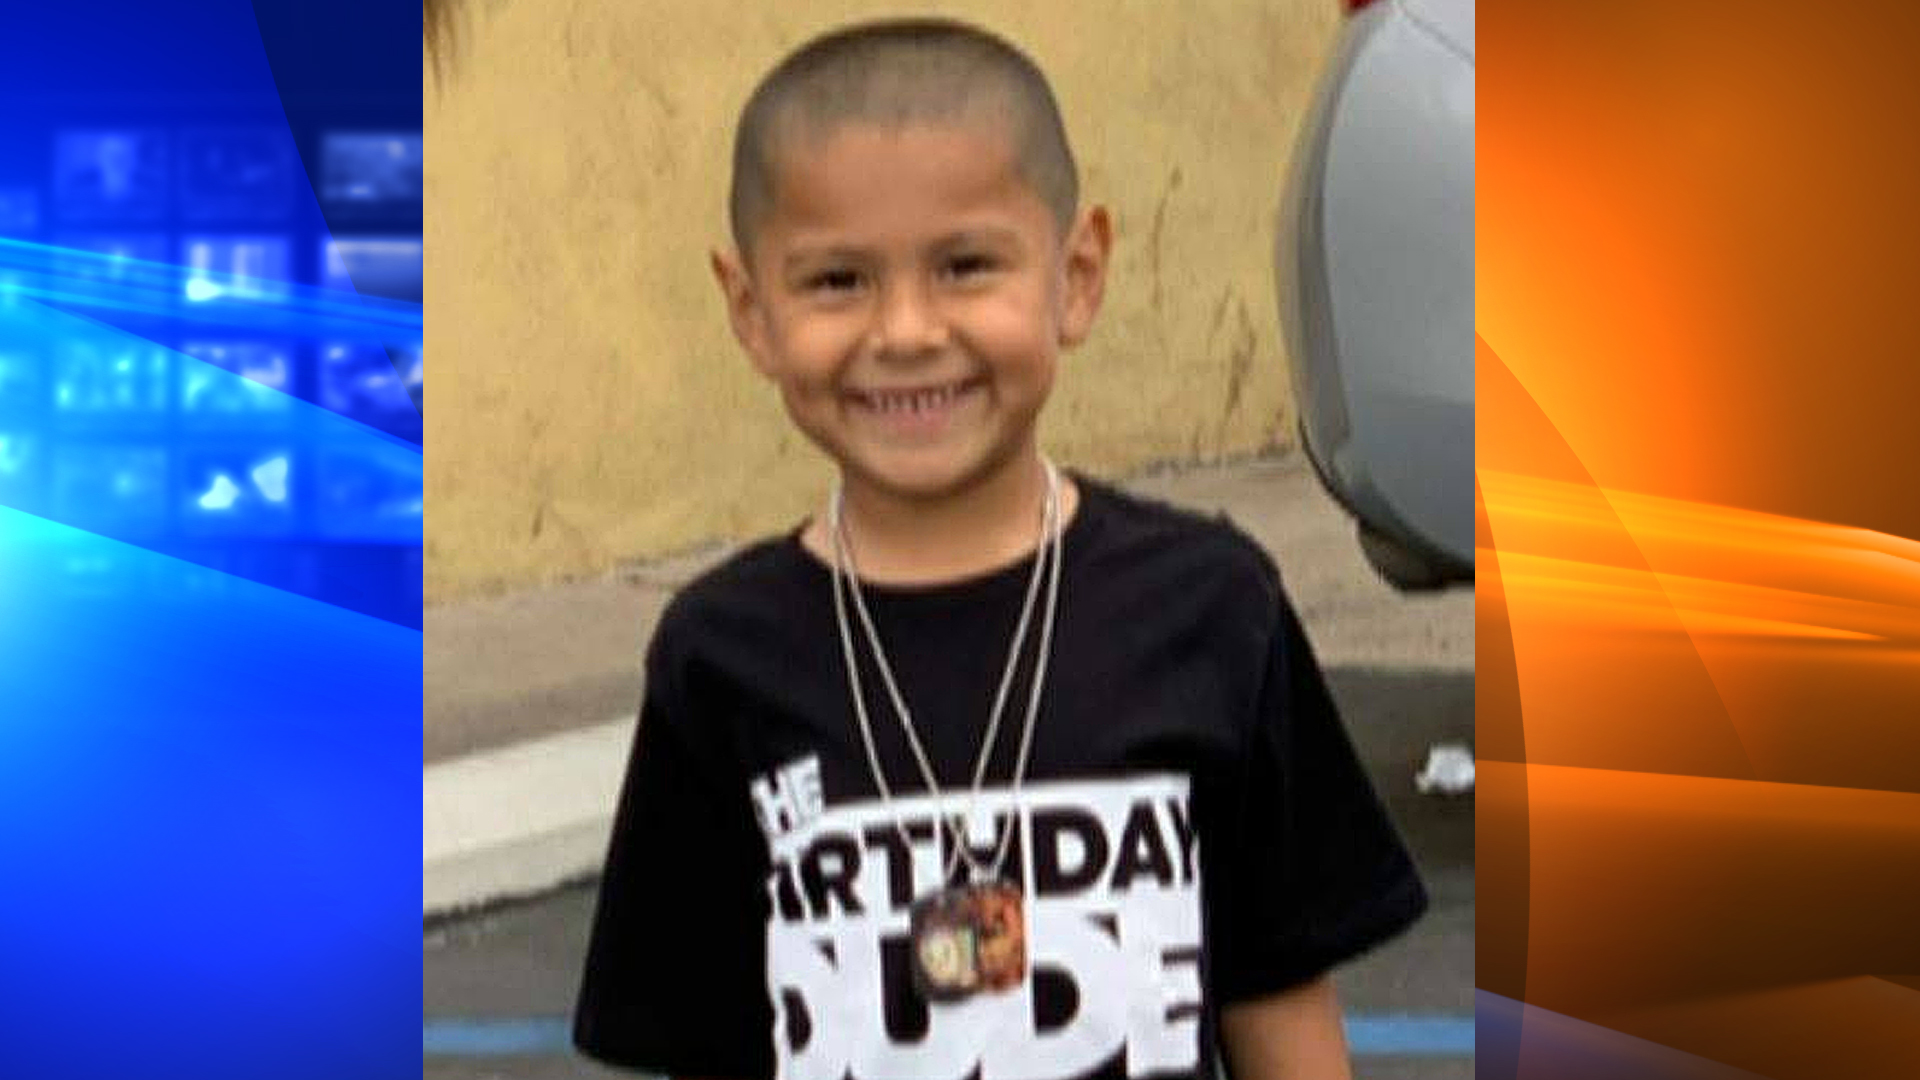 Stephen Romero is seen in this image provided via CNN Wire.